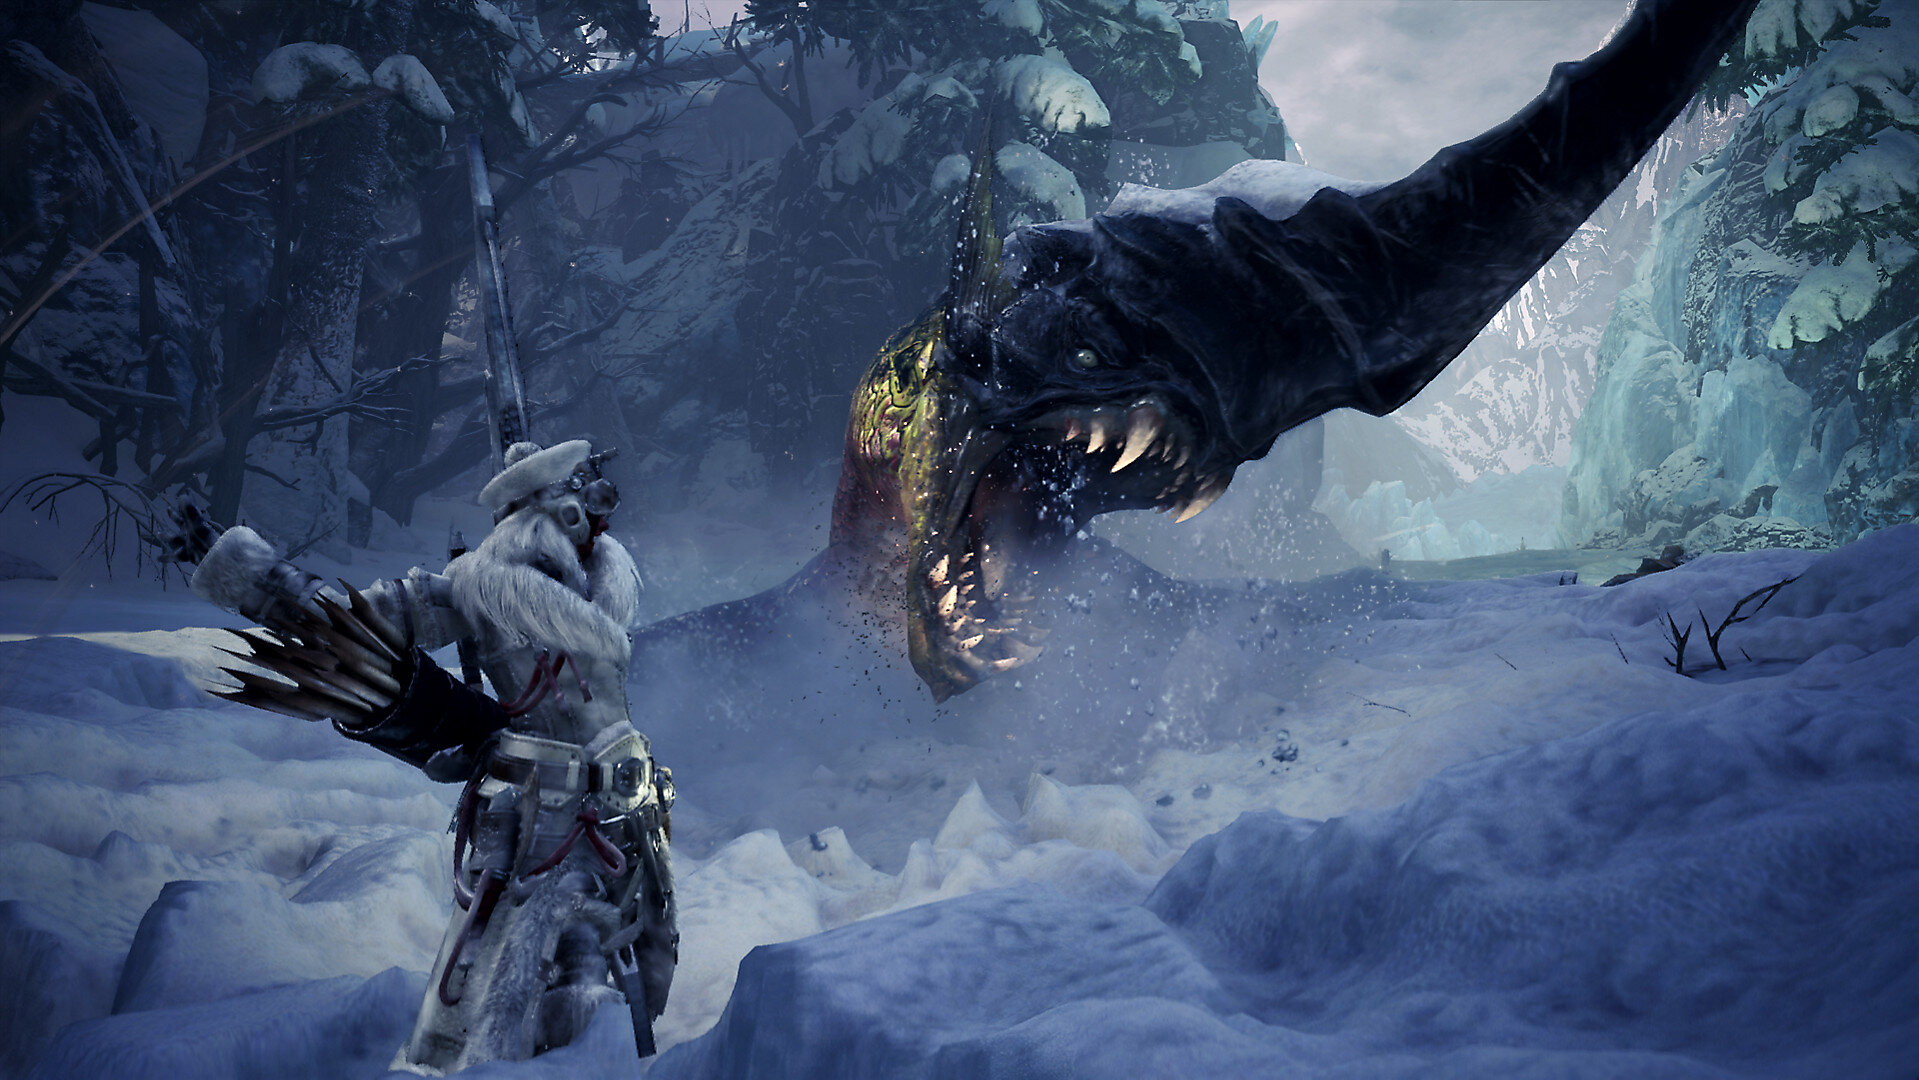 monster-hunter-world-iceborne-screen-03-ps4-us-09may19.jpeg